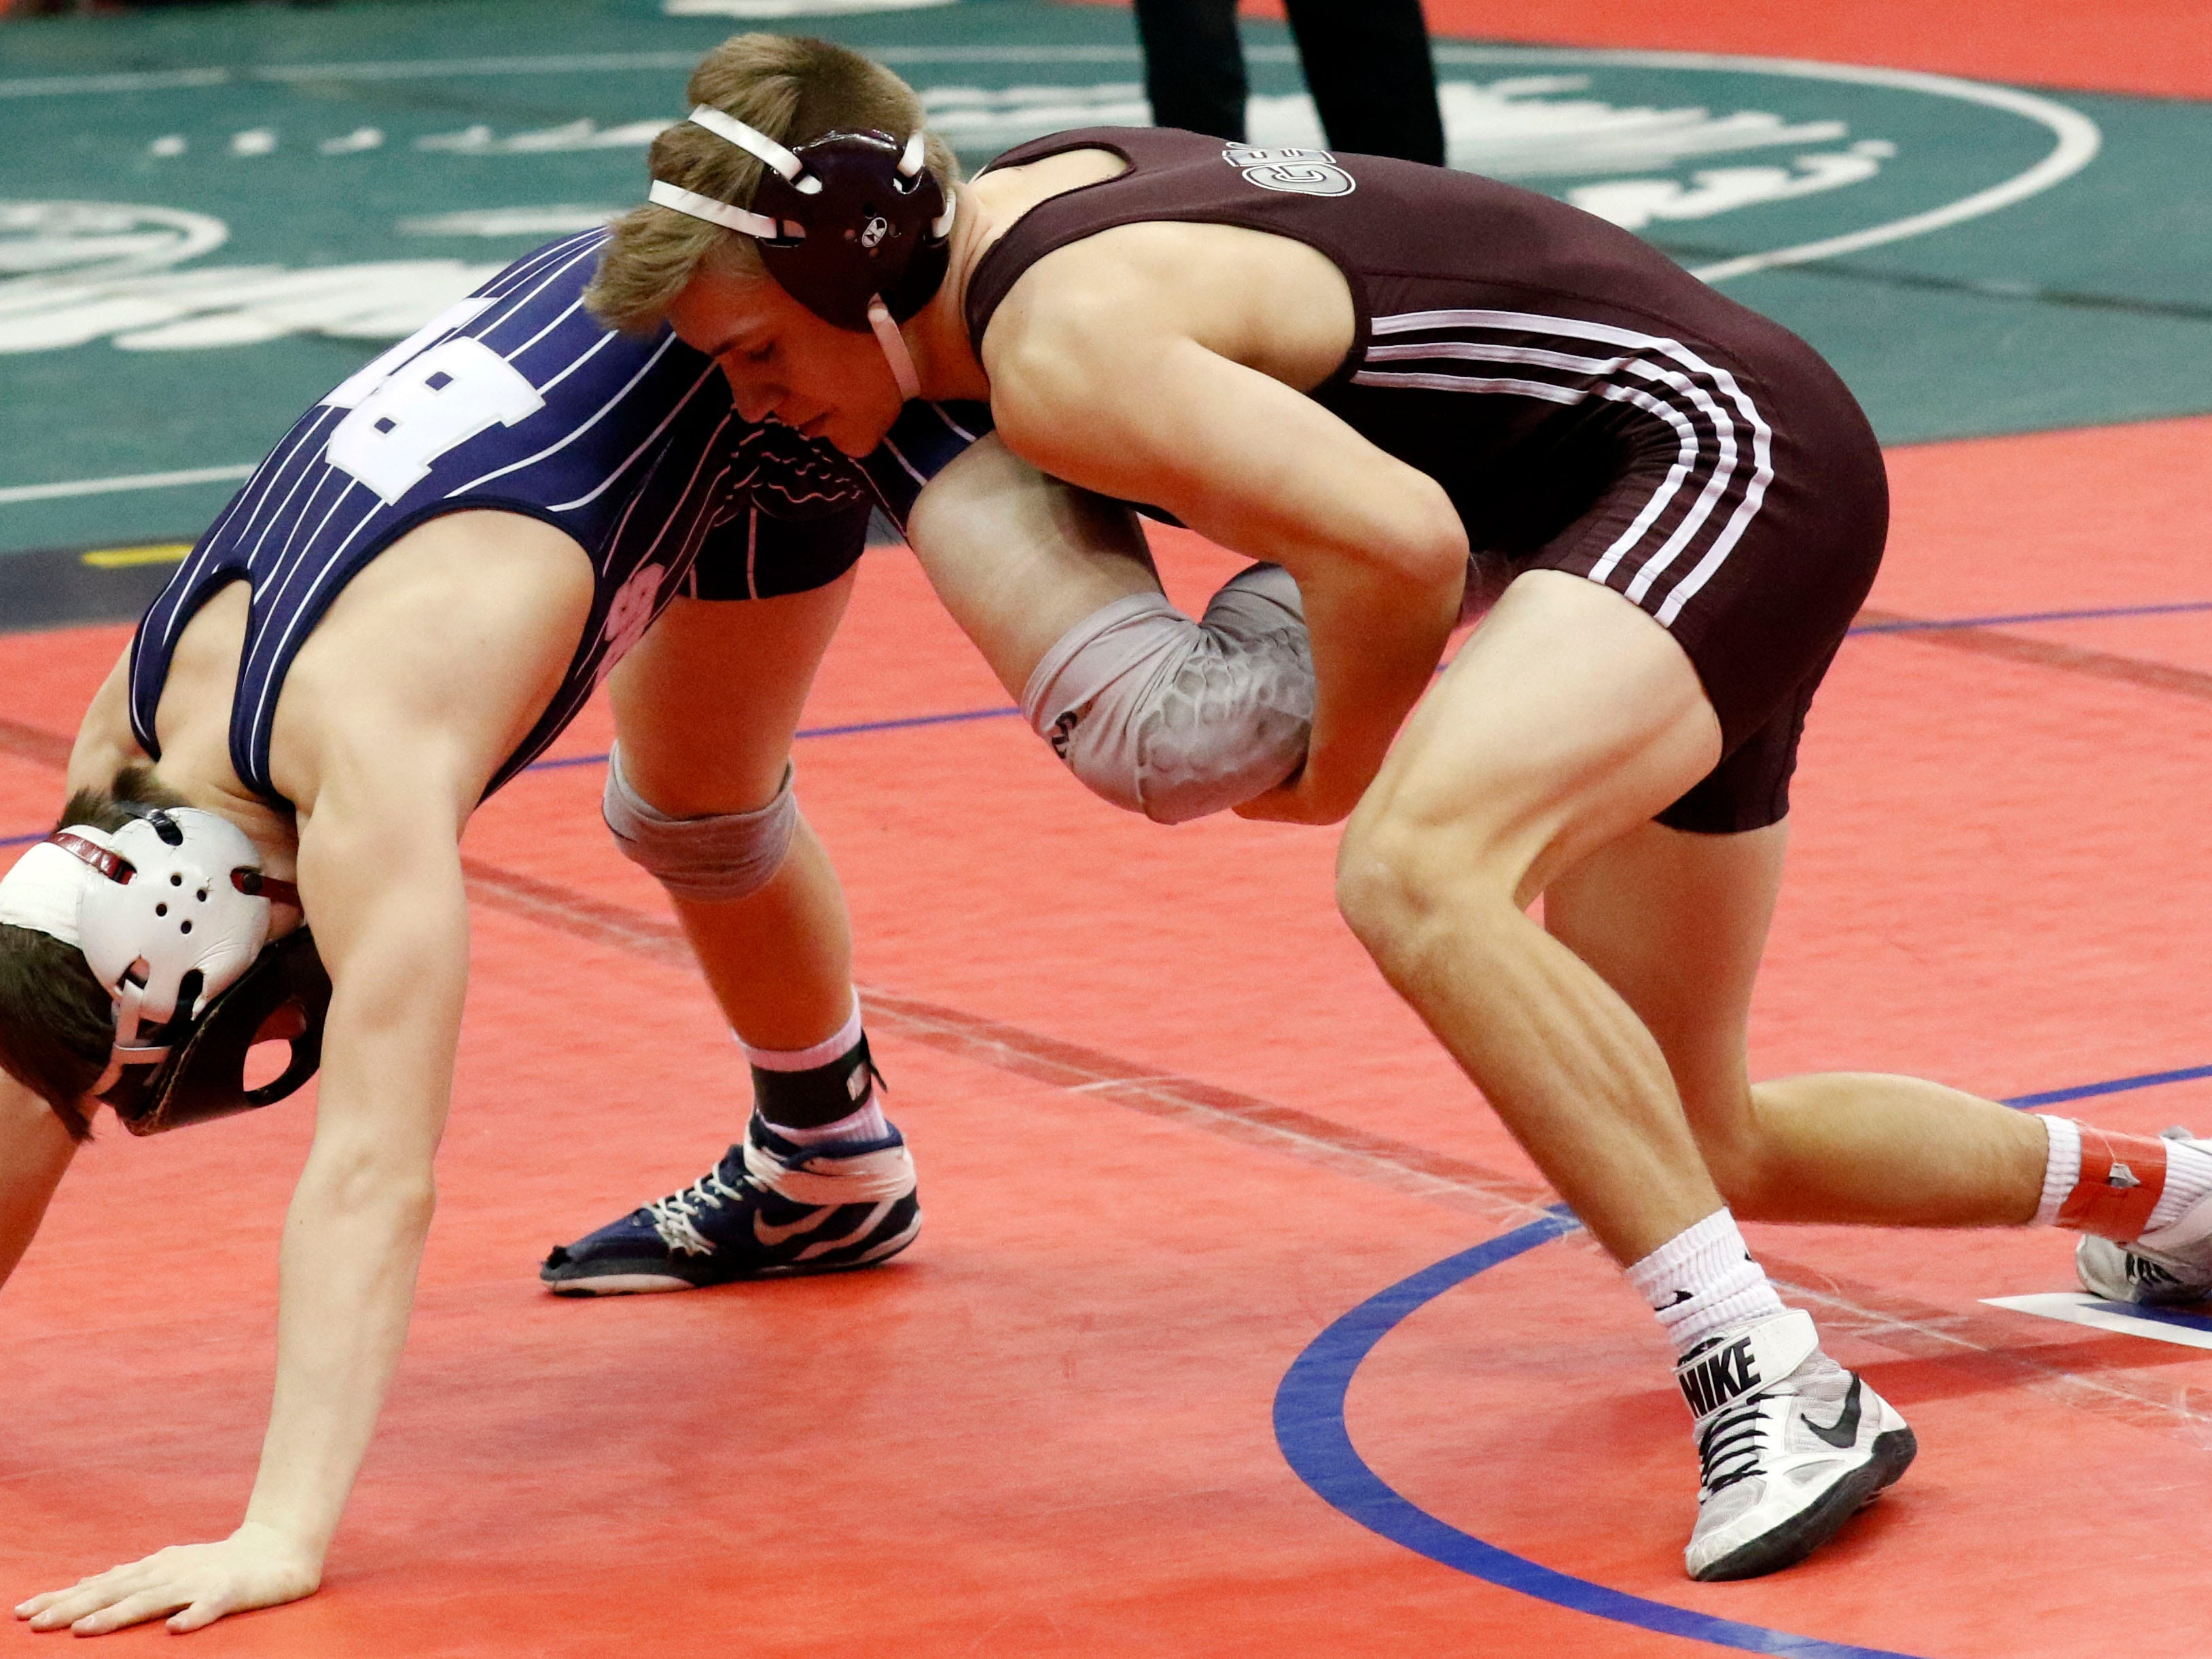 Genoa's Julian Sanchez wrestles Friday, March 8, 2019, during the State Wrestling Tournament at the Jerome Schottenstein Center at Ohio State University in Columbus.